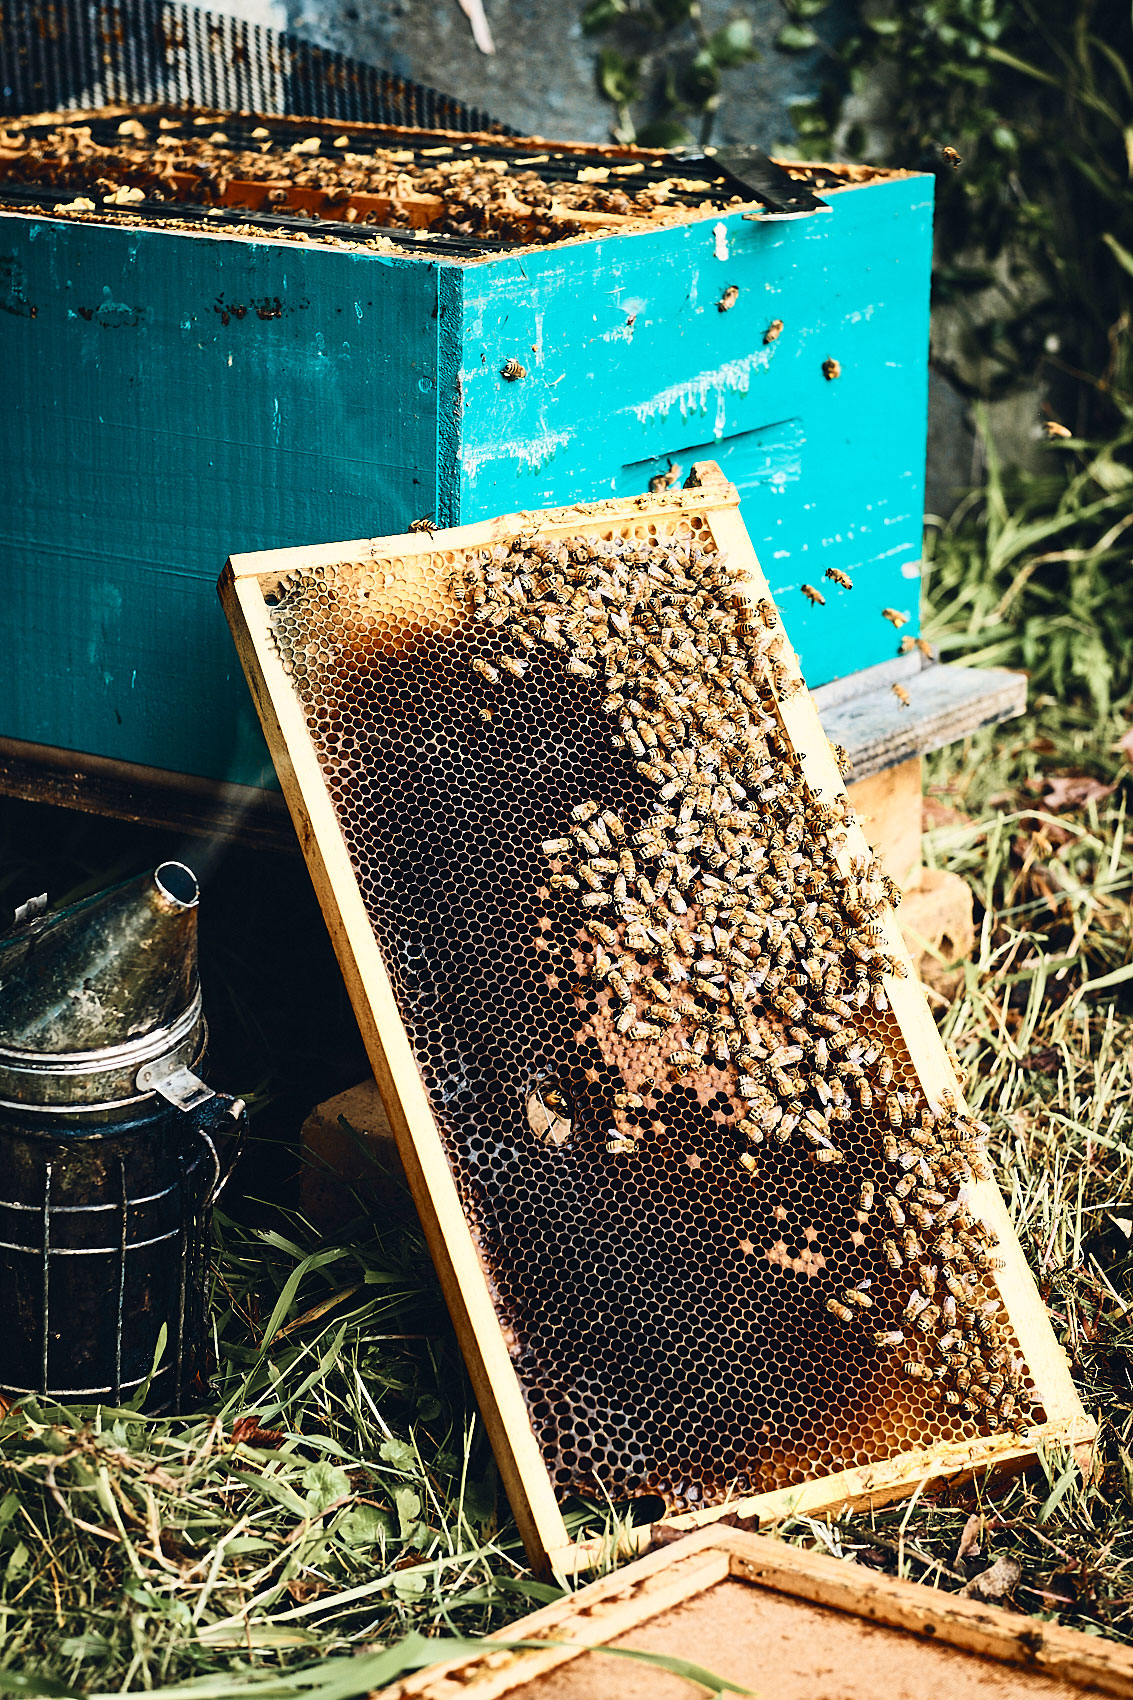 MW_Bees_August2018_035